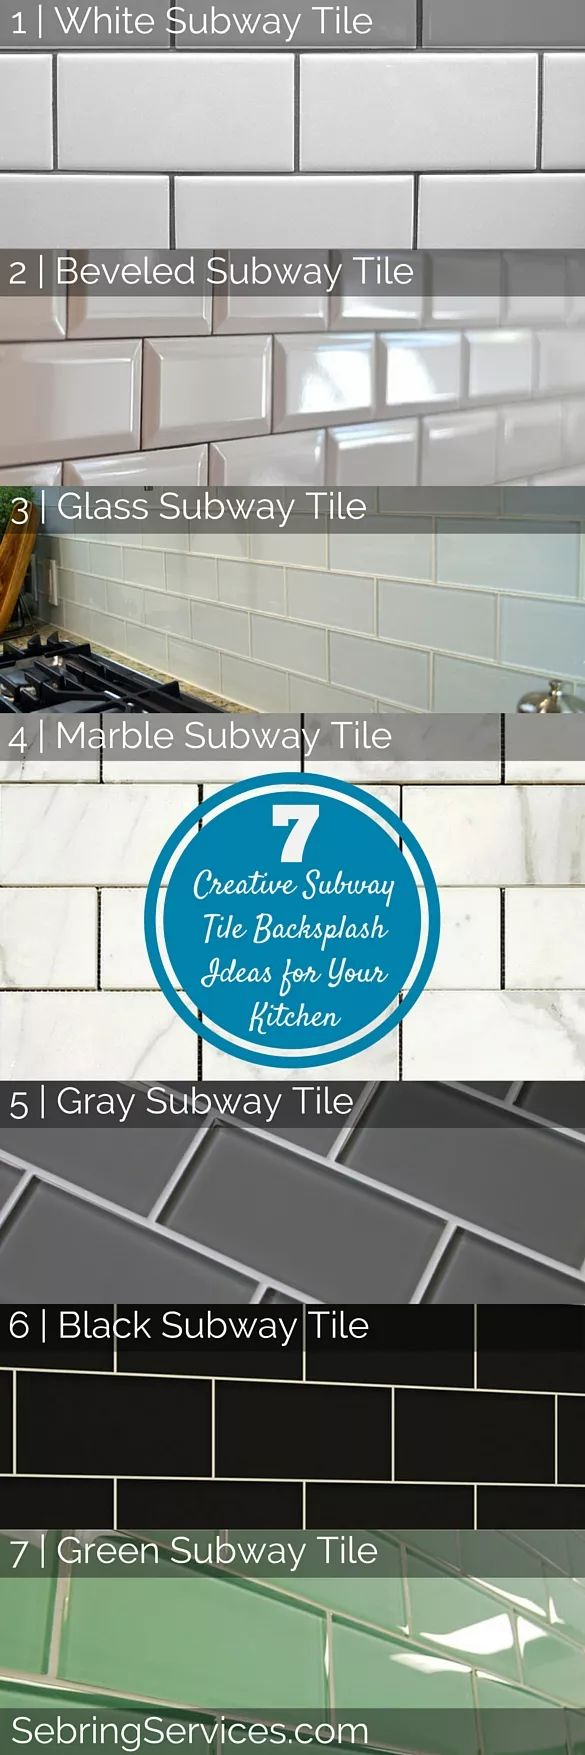 Kitchen Tiles Backsplash Ideas Part - 50: 7 Creative Subway Tile Backsplash Ideas For Your Kitchen